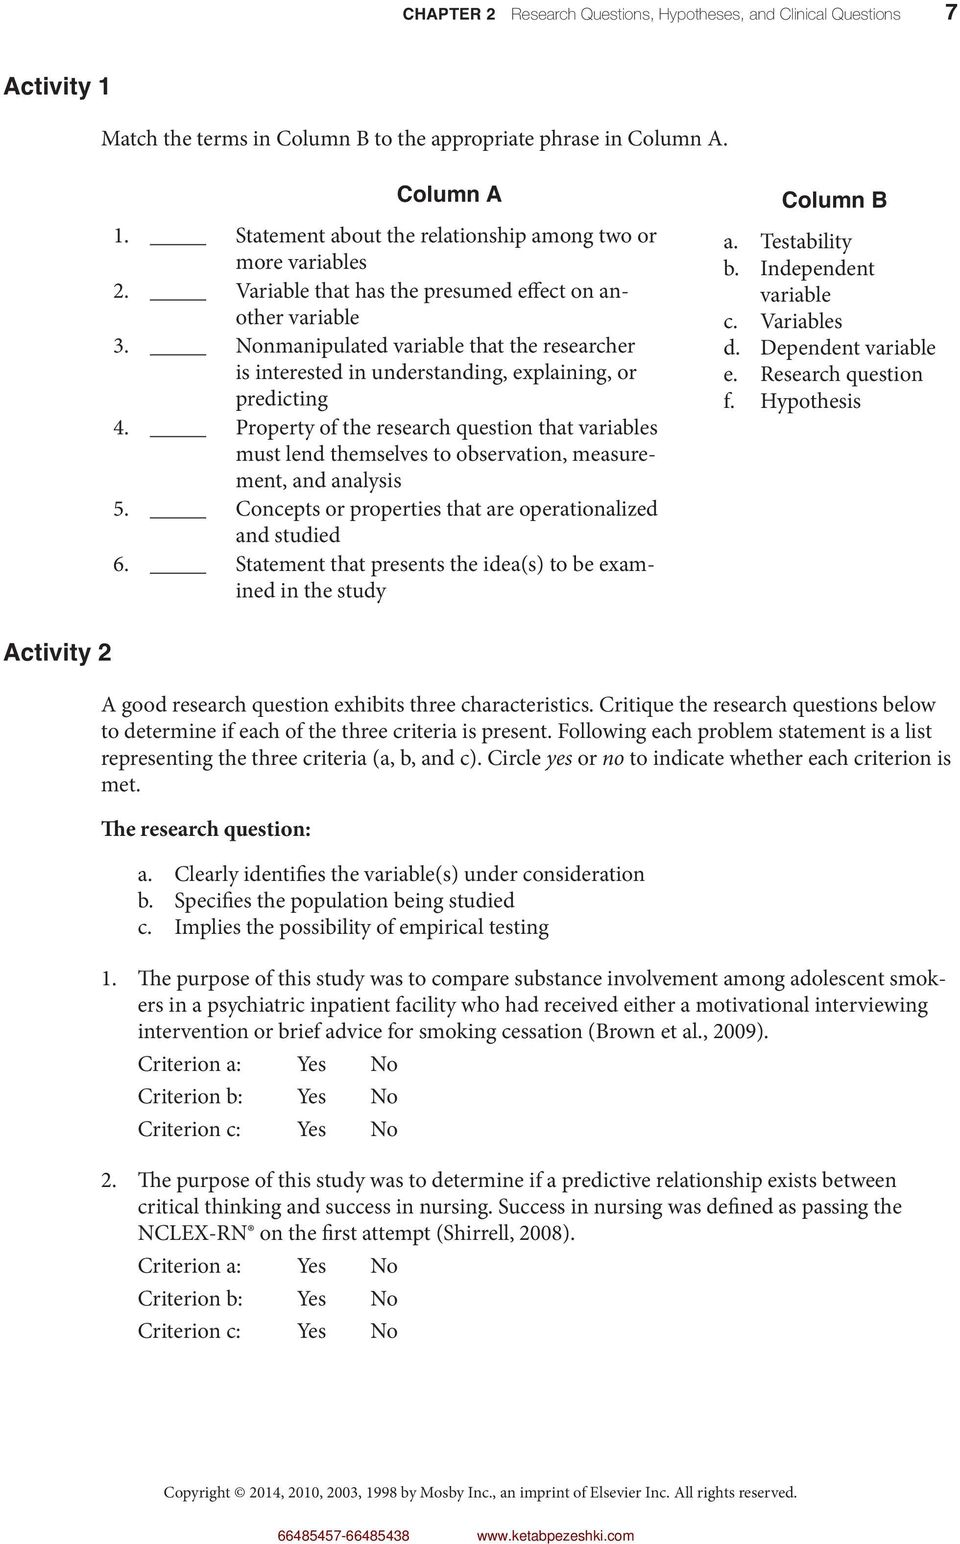 characteristics of a research problem statement